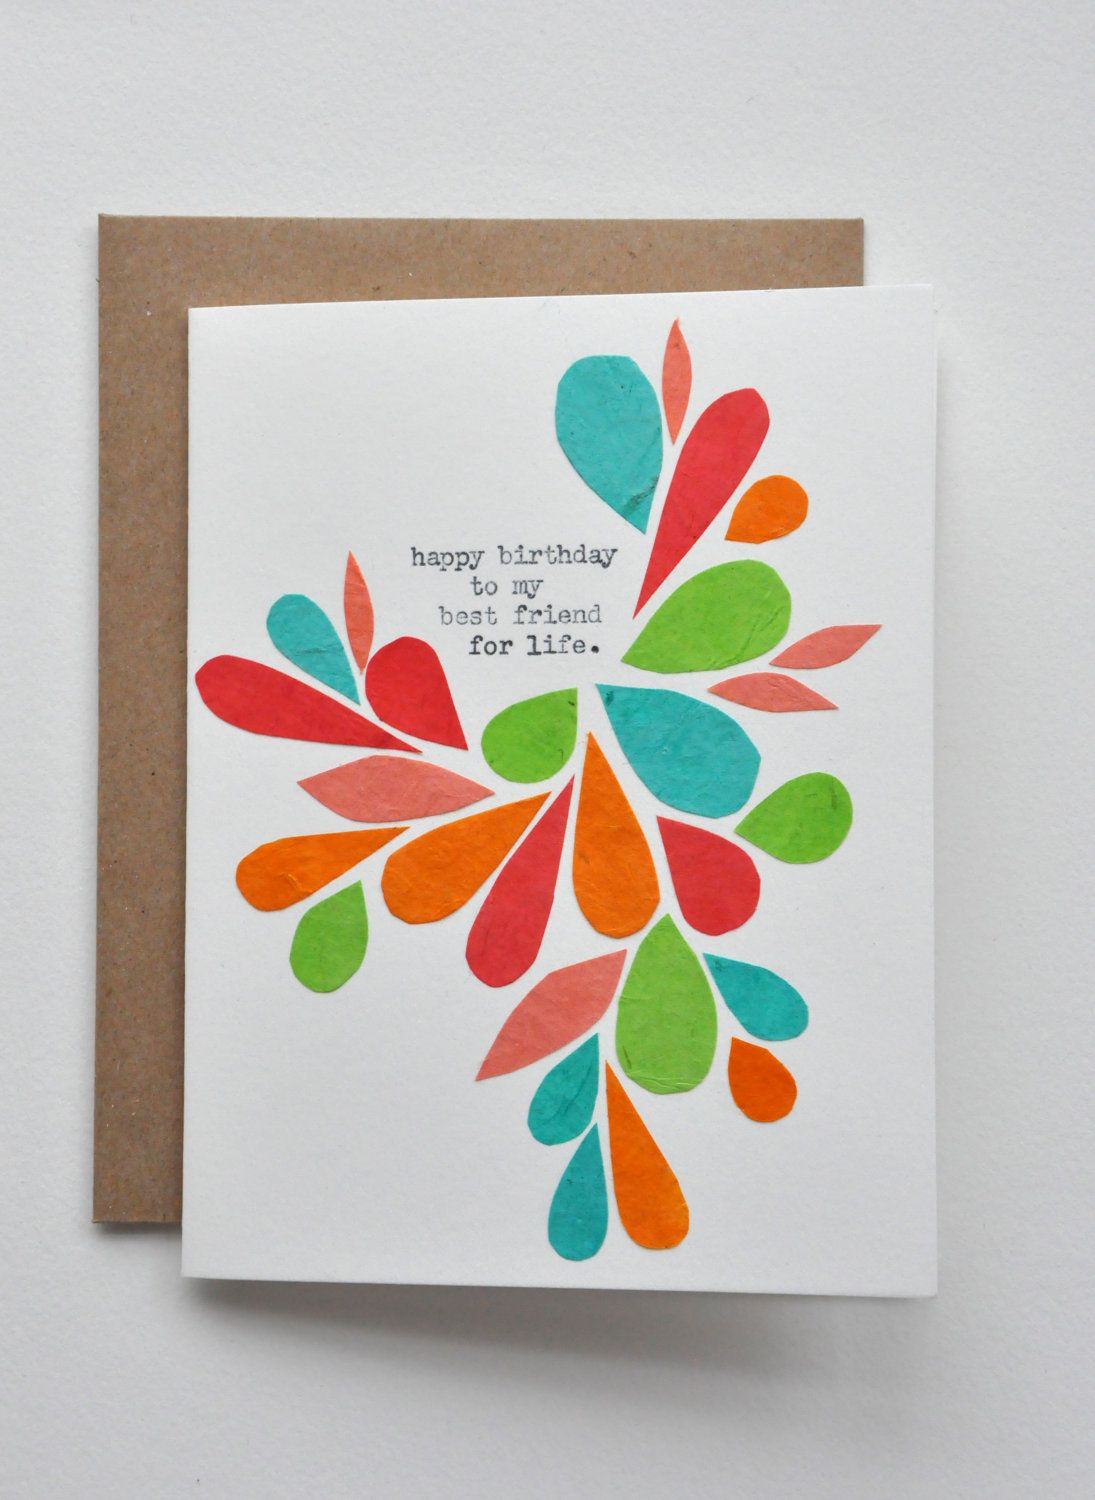 homemade birthday card ideas for friends ; 7e68d2d3584b96c96fc3ab1b3615786c